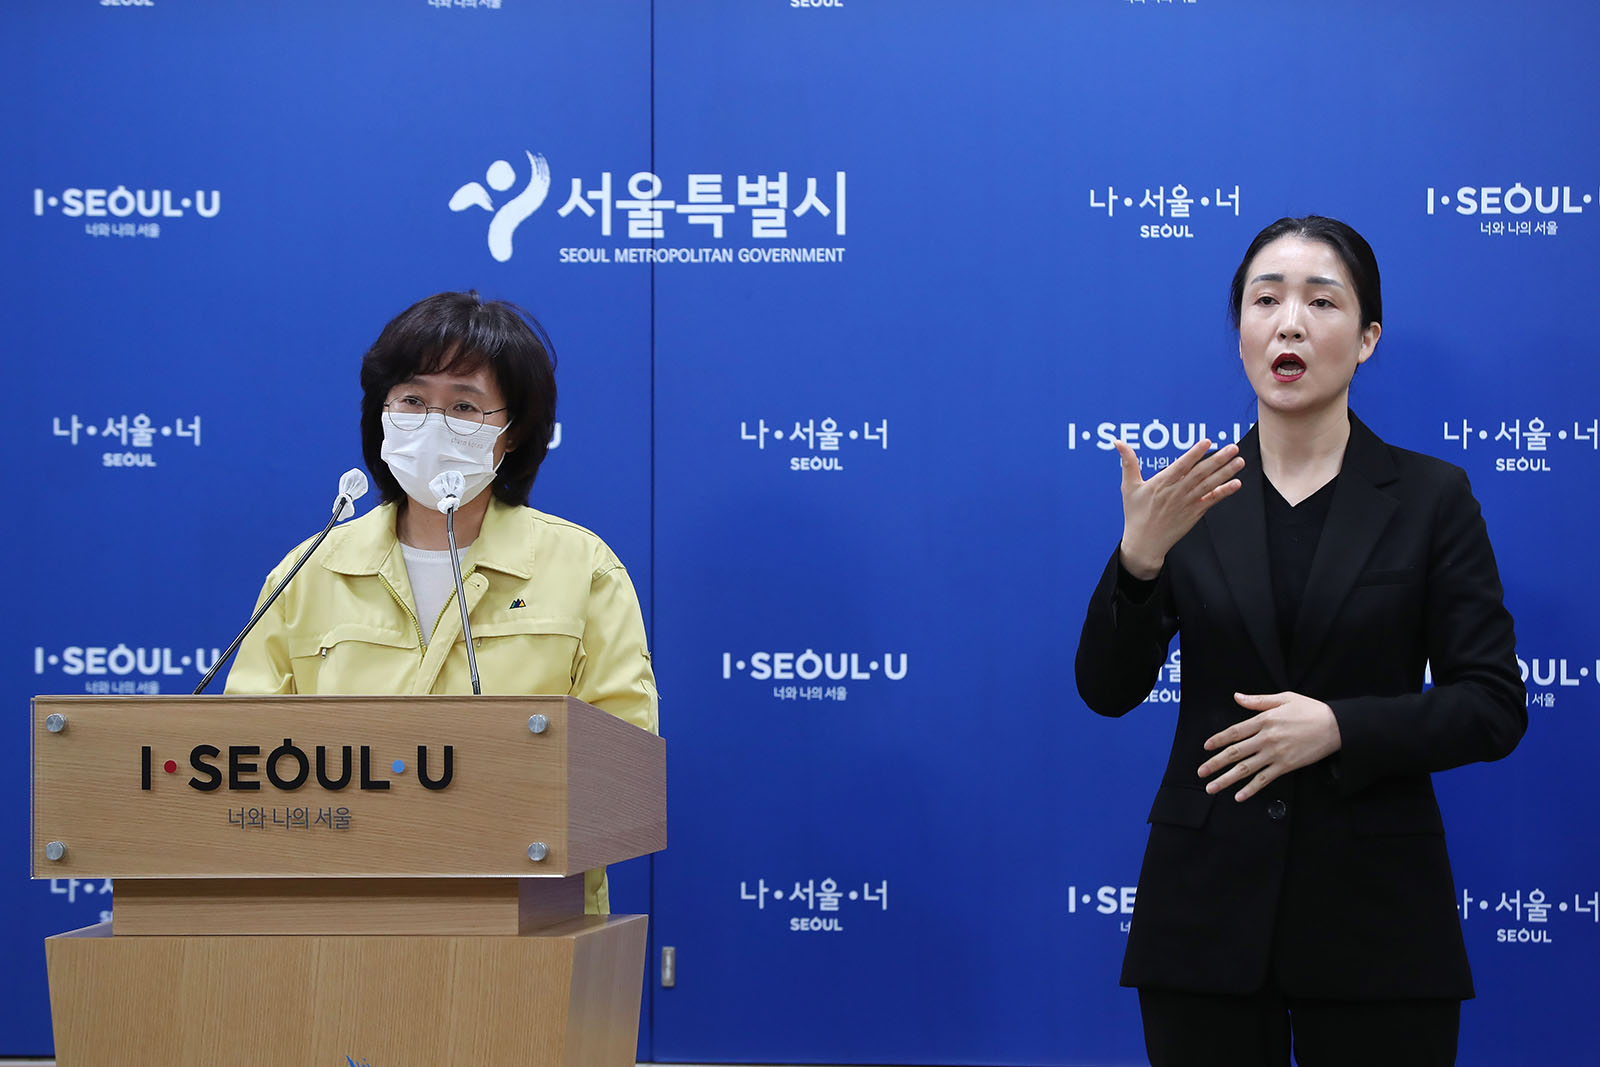 Park Yoo-mi, a senior quarantine official at the Seoul city government, announces anti-Covid-19 steps and new restrictions at Seoul City Hall in Seoul, South Korea, on November 18.